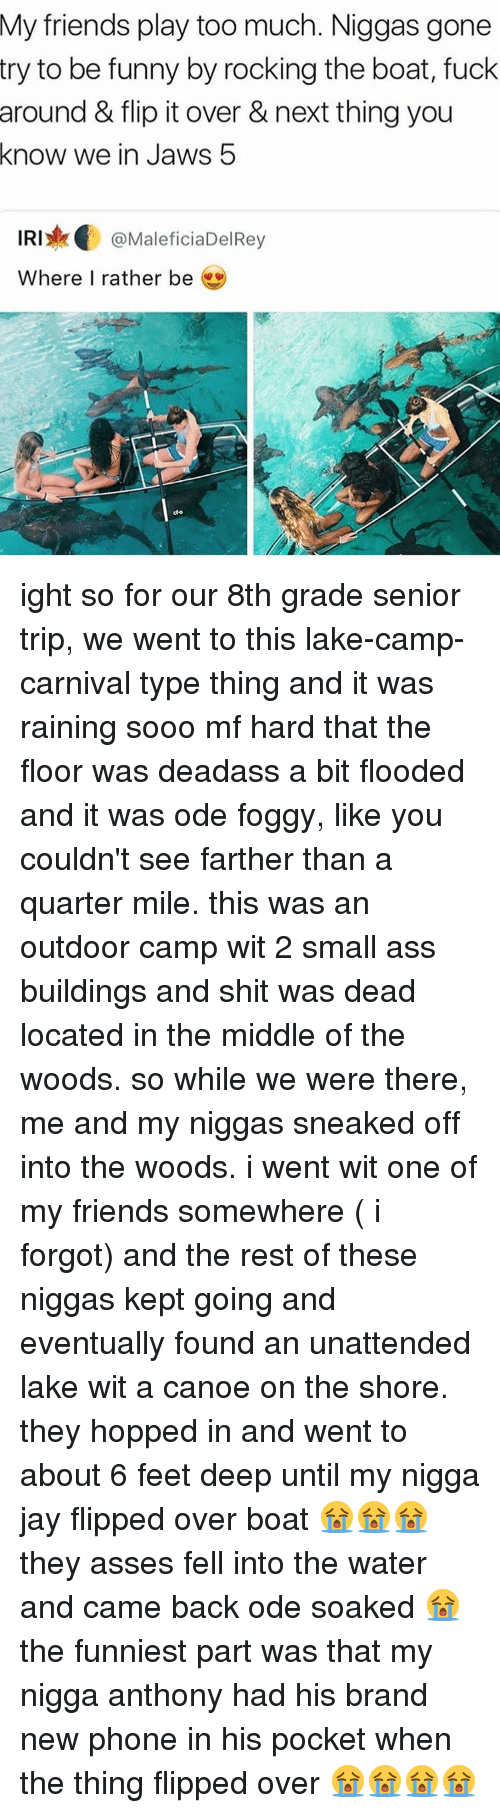 Memes, My Nigga, and Iris: My friends play too much. Niggas gone  try to be funny by rocking the boat, fuck  around & flip it over & next thing you  know we in Jaws 5  IRI MaleficiaDelRey  Where I rather be ight so for our 8th grade senior trip, we went to this lake-camp-carnival type thing and it was raining sooo mf hard that the floor was deadass a bit flooded and it was ode foggy, like you couldn't see farther than a quarter mile. this was an outdoor camp wit 2 small ass buildings and shit was dead located in the middle of the woods. so while we were there, me and my niggas sneaked off into the woods. i went wit one of my friends somewhere ( i forgot) and the rest of these niggas kept going and eventually found an unattended lake wit a canoe on the shore. they hopped in and went to about 6 feet deep until my nigga jay flipped over boat 😭😭😭 they asses fell into the water and came back ode soaked 😭 the funniest part was that my nigga anthony had his brand new phone in his pocket when the thing flipped over 😭😭😭😭